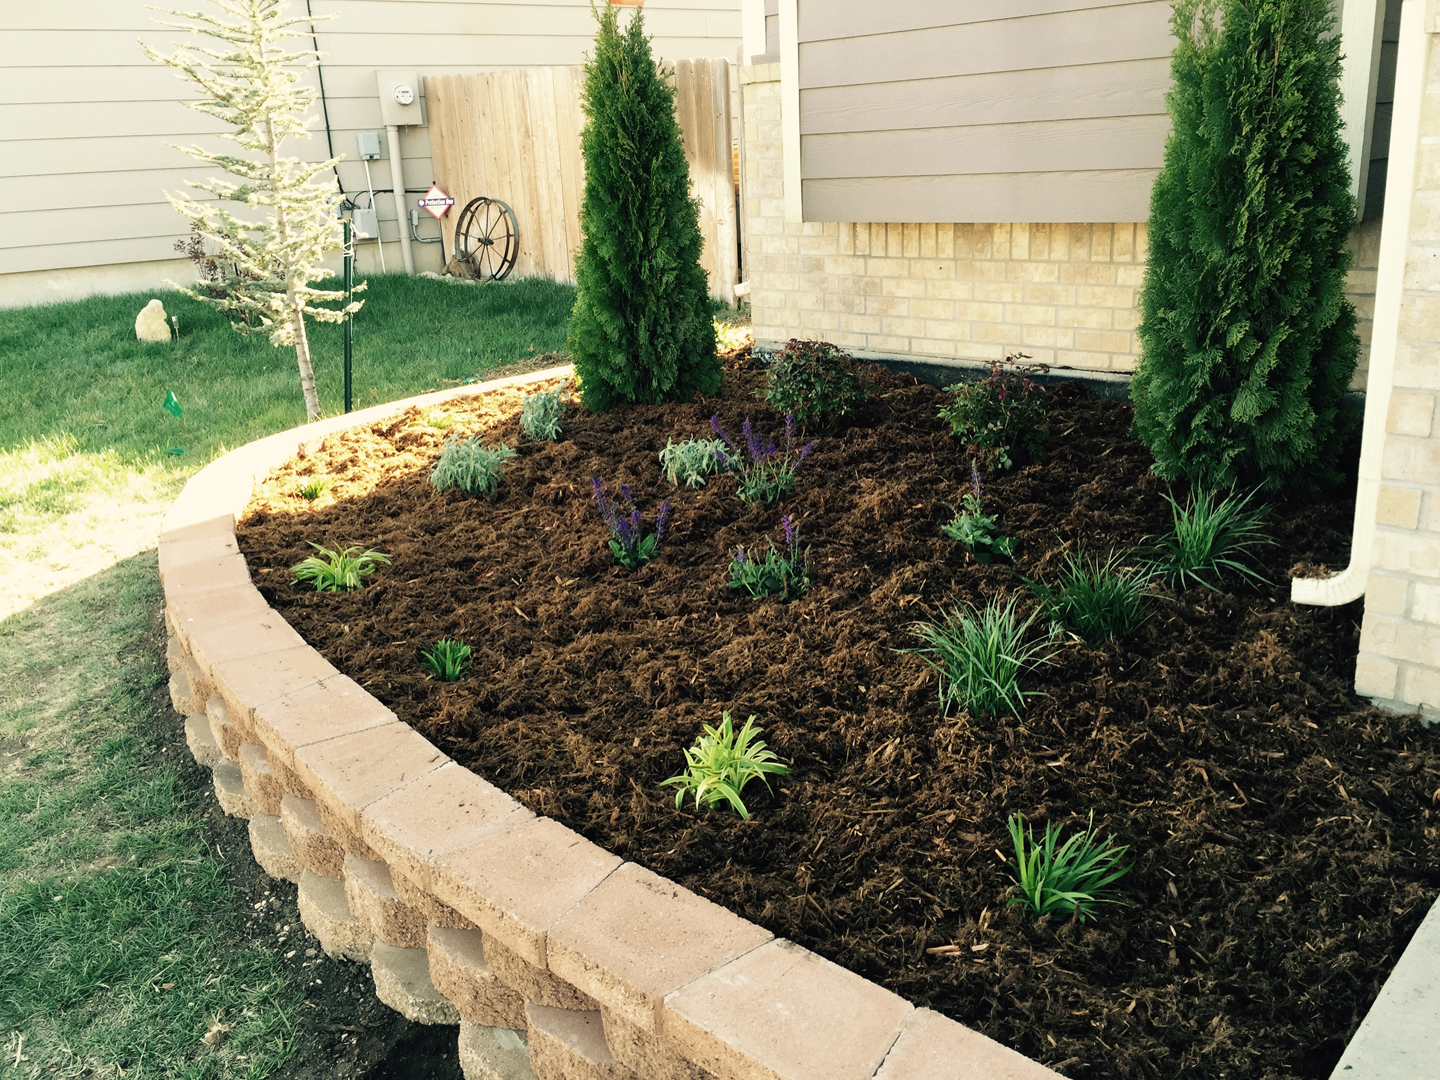 Landscape construction daniels lawn and landscaping services for Lawn and garden services